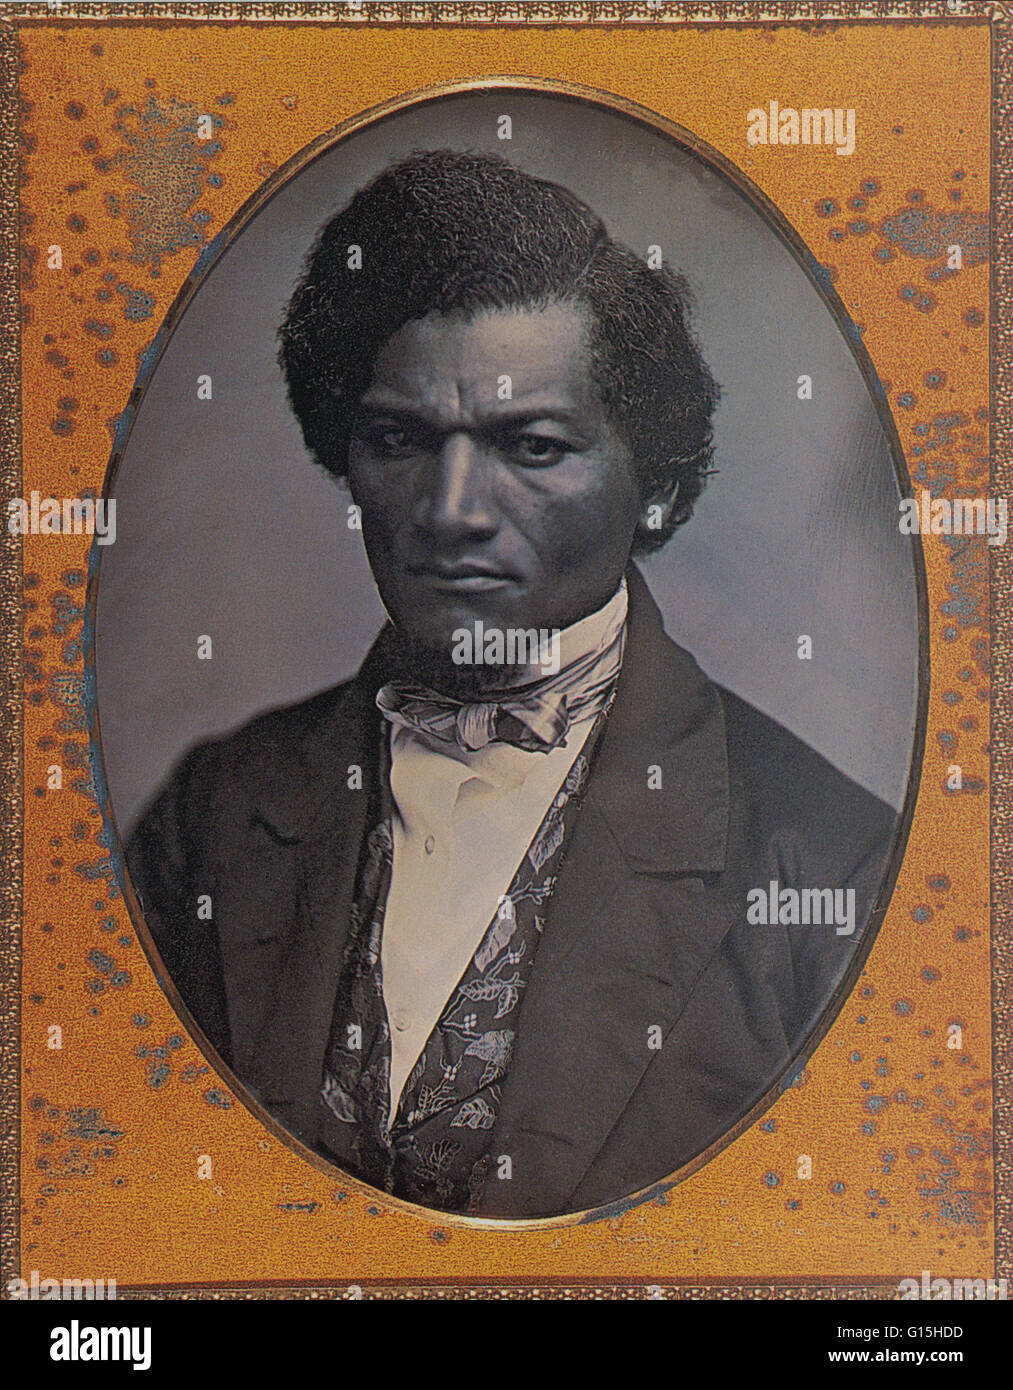 frederick douglass learning to read essay summary Summary: in the book narrative of the life of frederick douglass, douglass writes about his life as a slave on plantations then about how learning to.